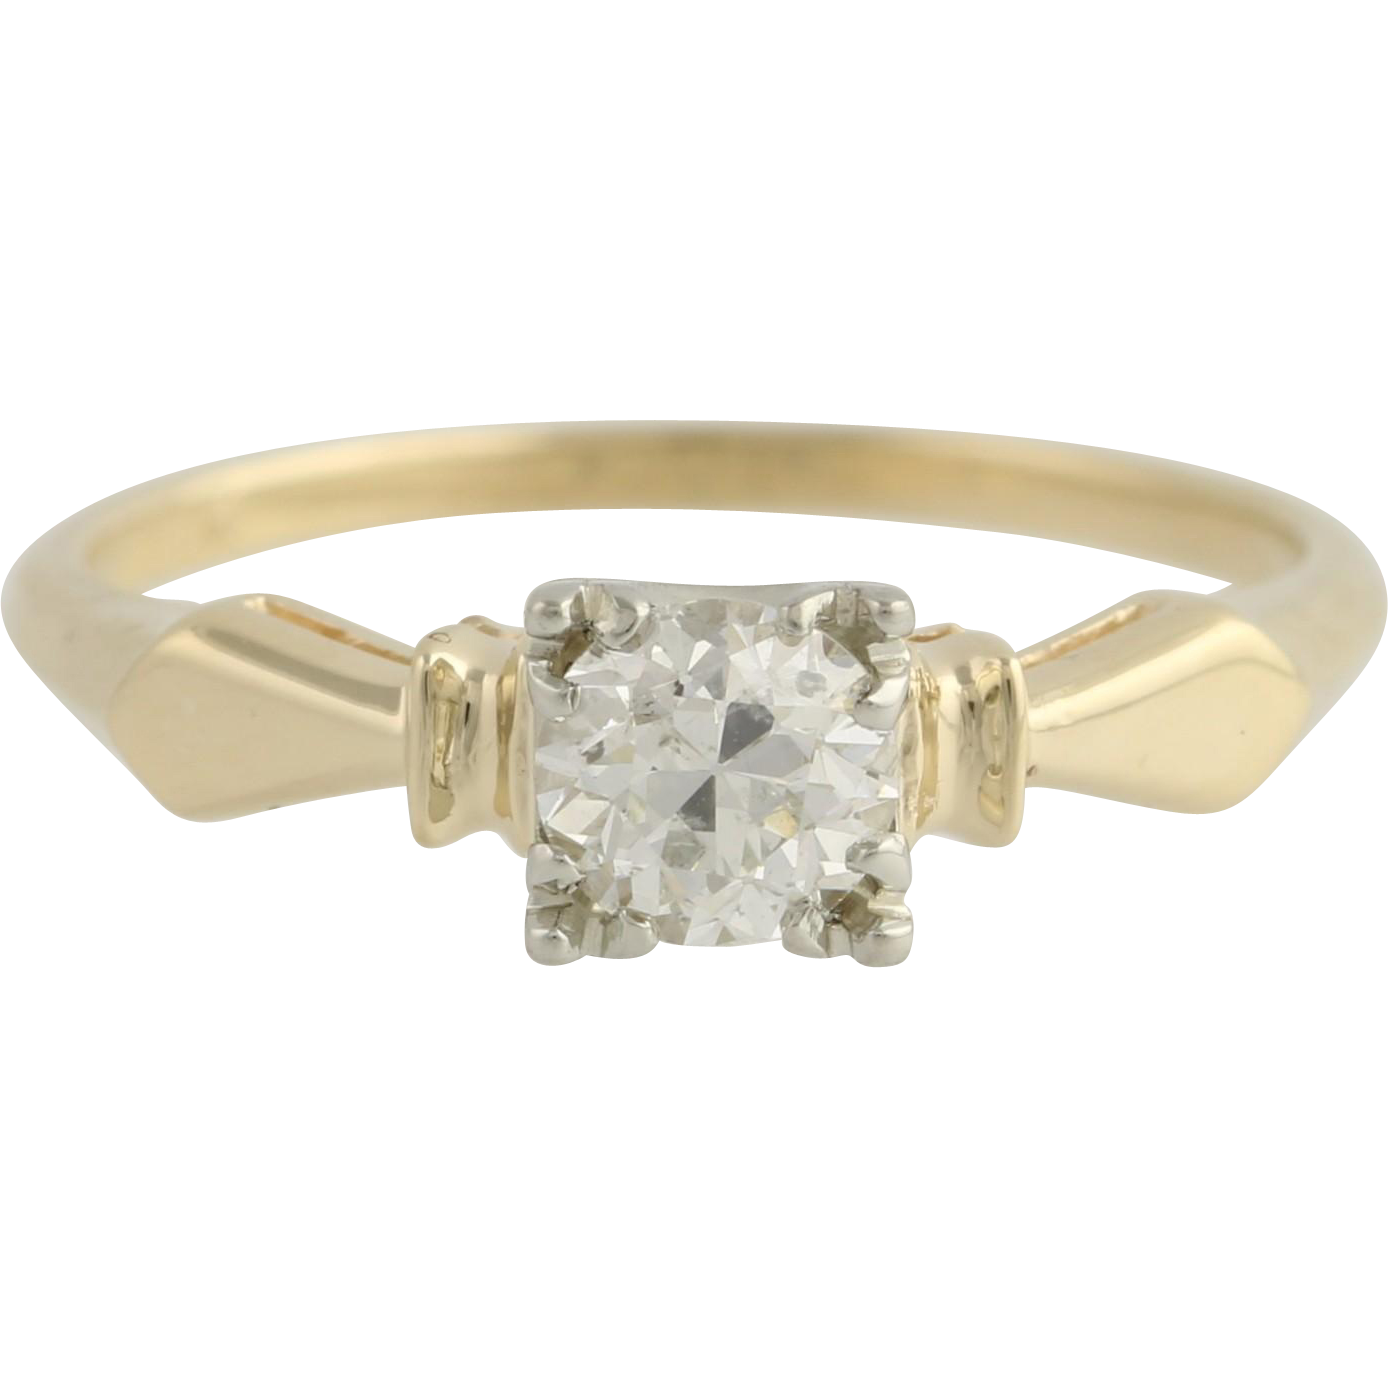 Art Deco Diamond Engagement Ring - 14k Yellow & White Gold 5 1/2 Genuine .44ctw Unique Engagement Ring